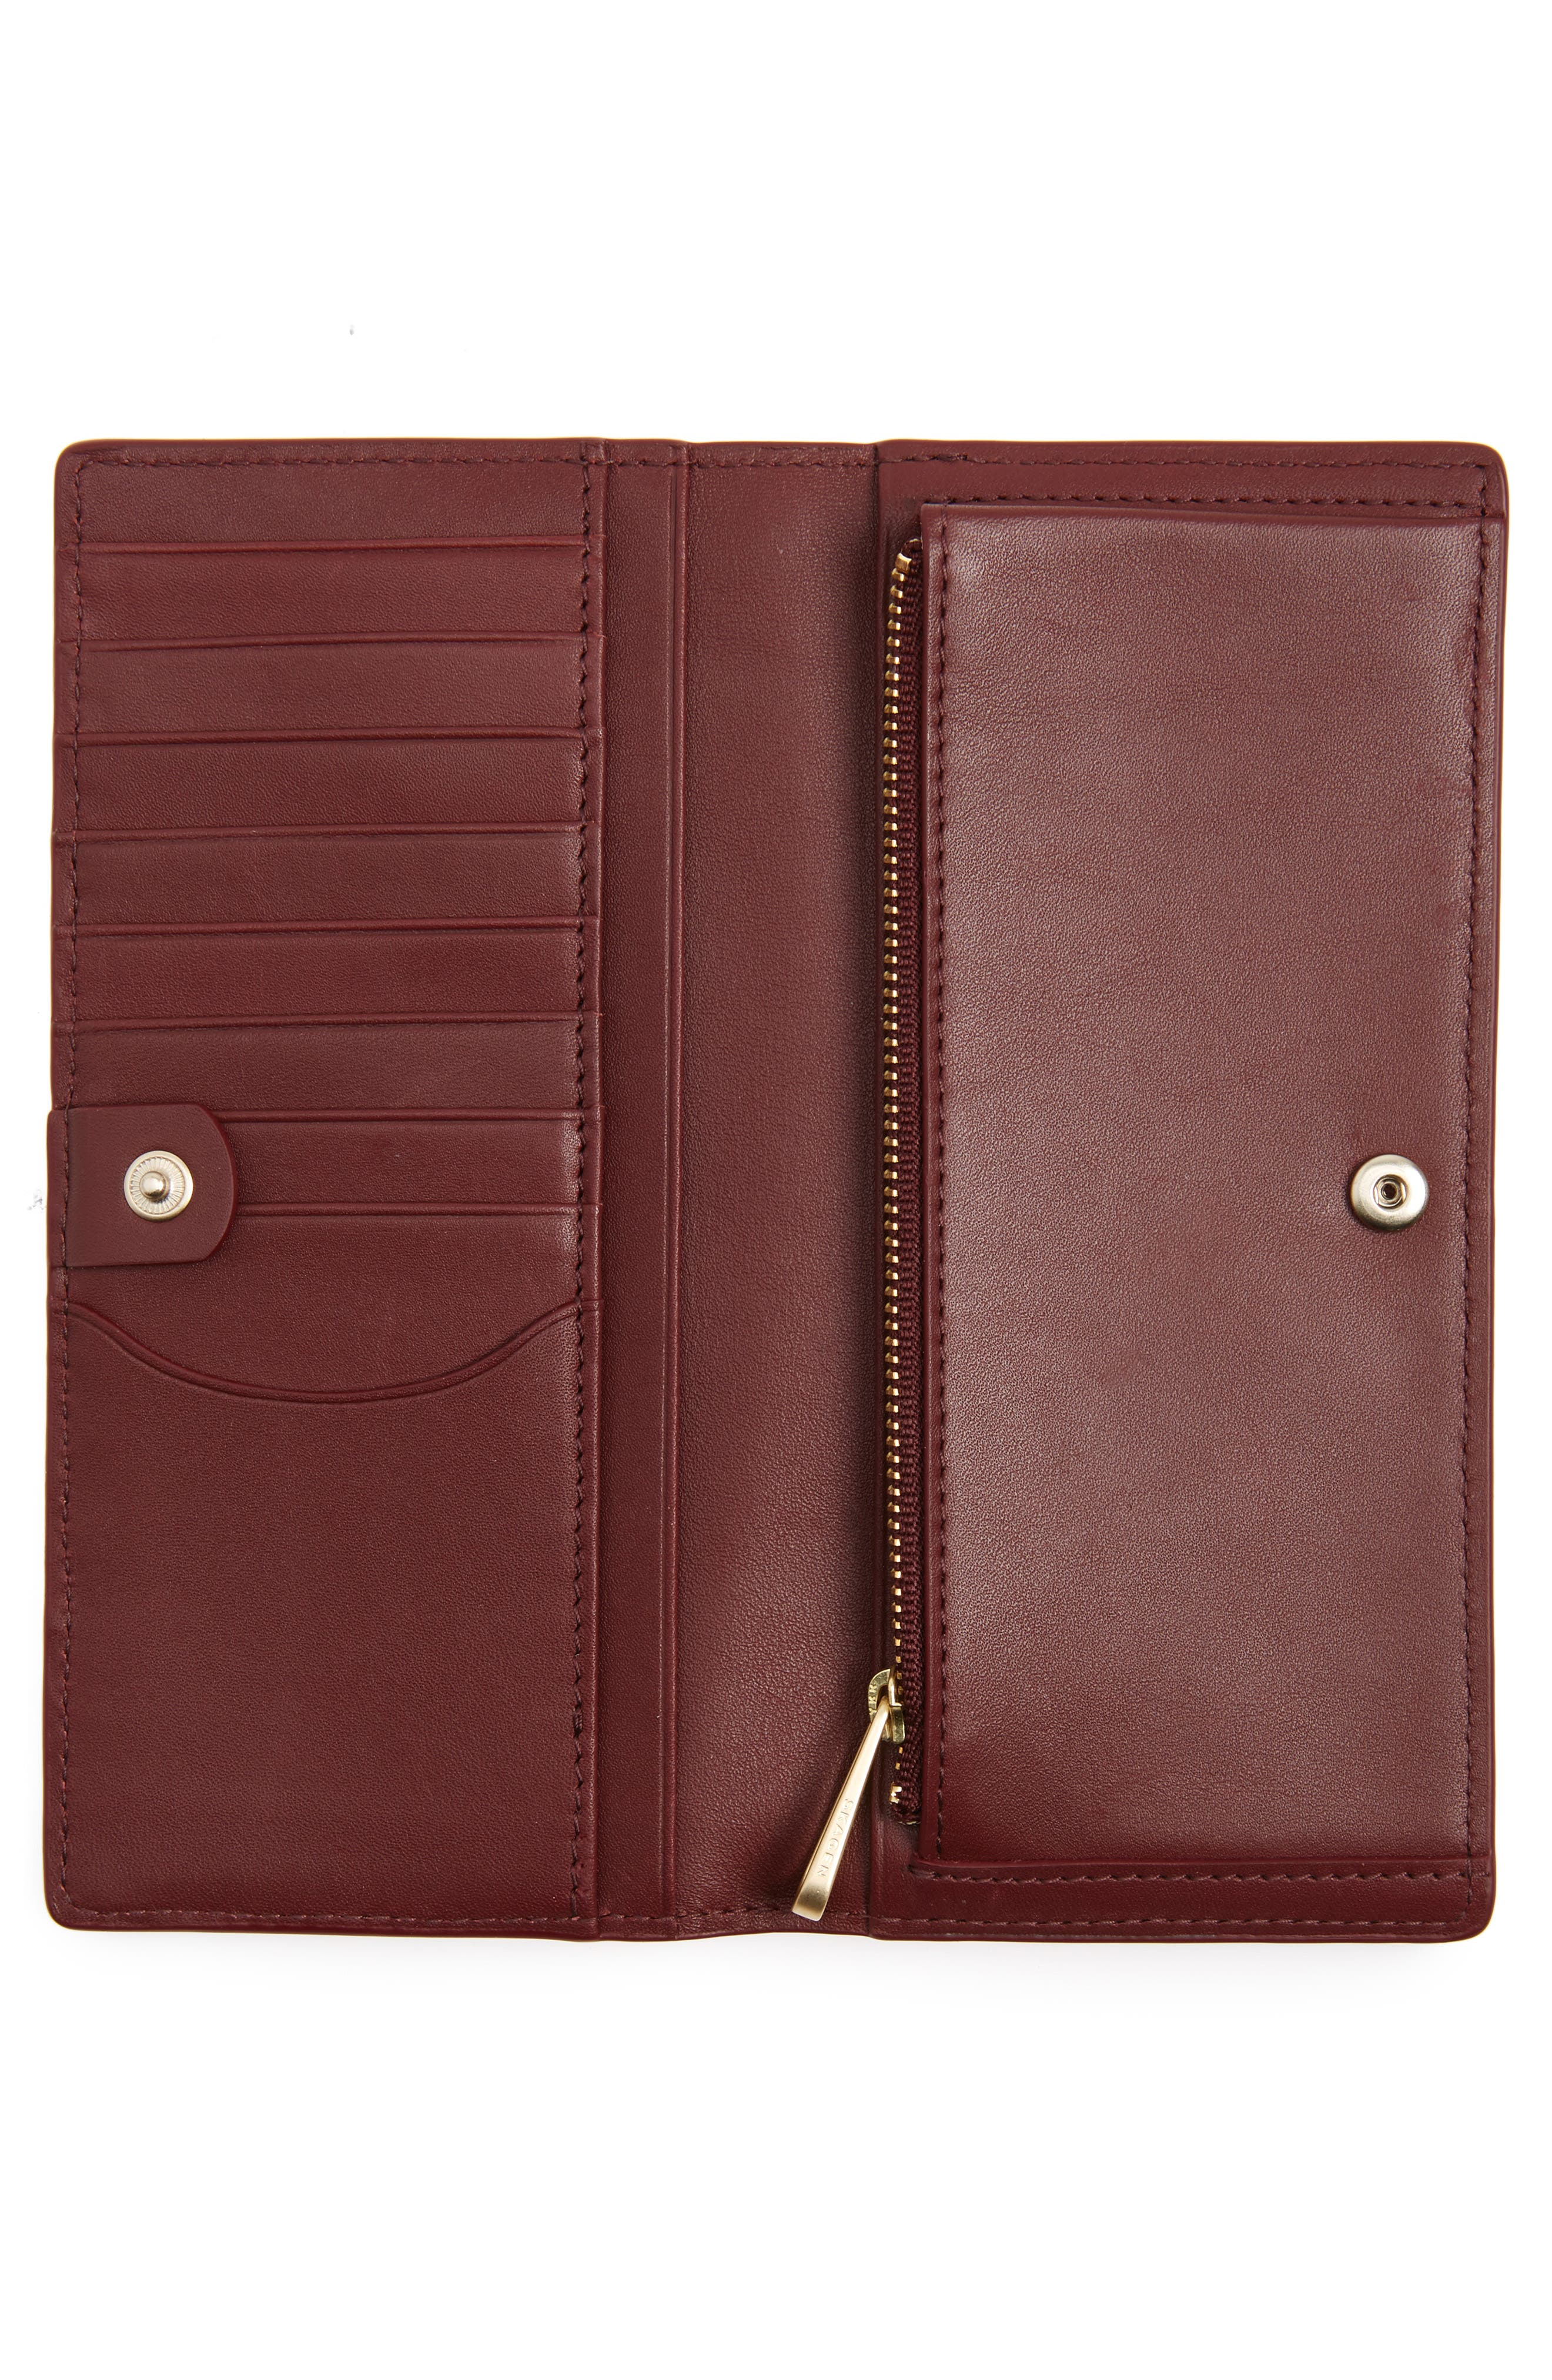 Slim Vertical Leather Wallet,                             Alternate thumbnail 2, color,                             Cordovan